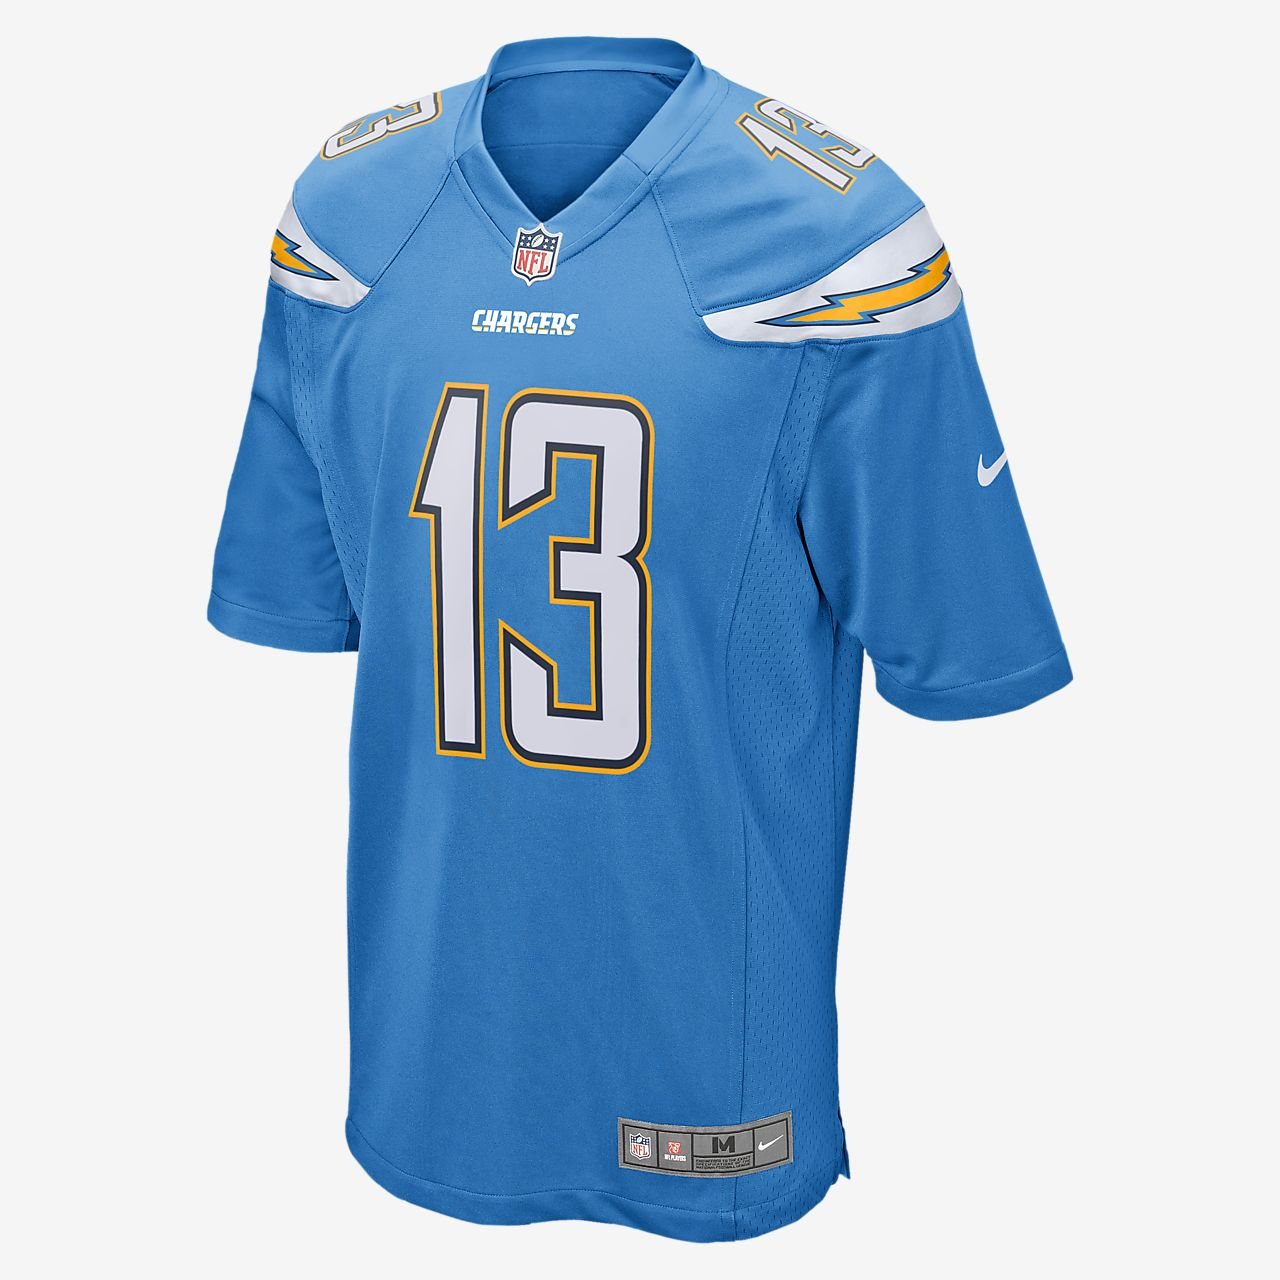 NFL Los Angeles Chargers (Keenan Allen) Men's Football Alternate Game Jersey